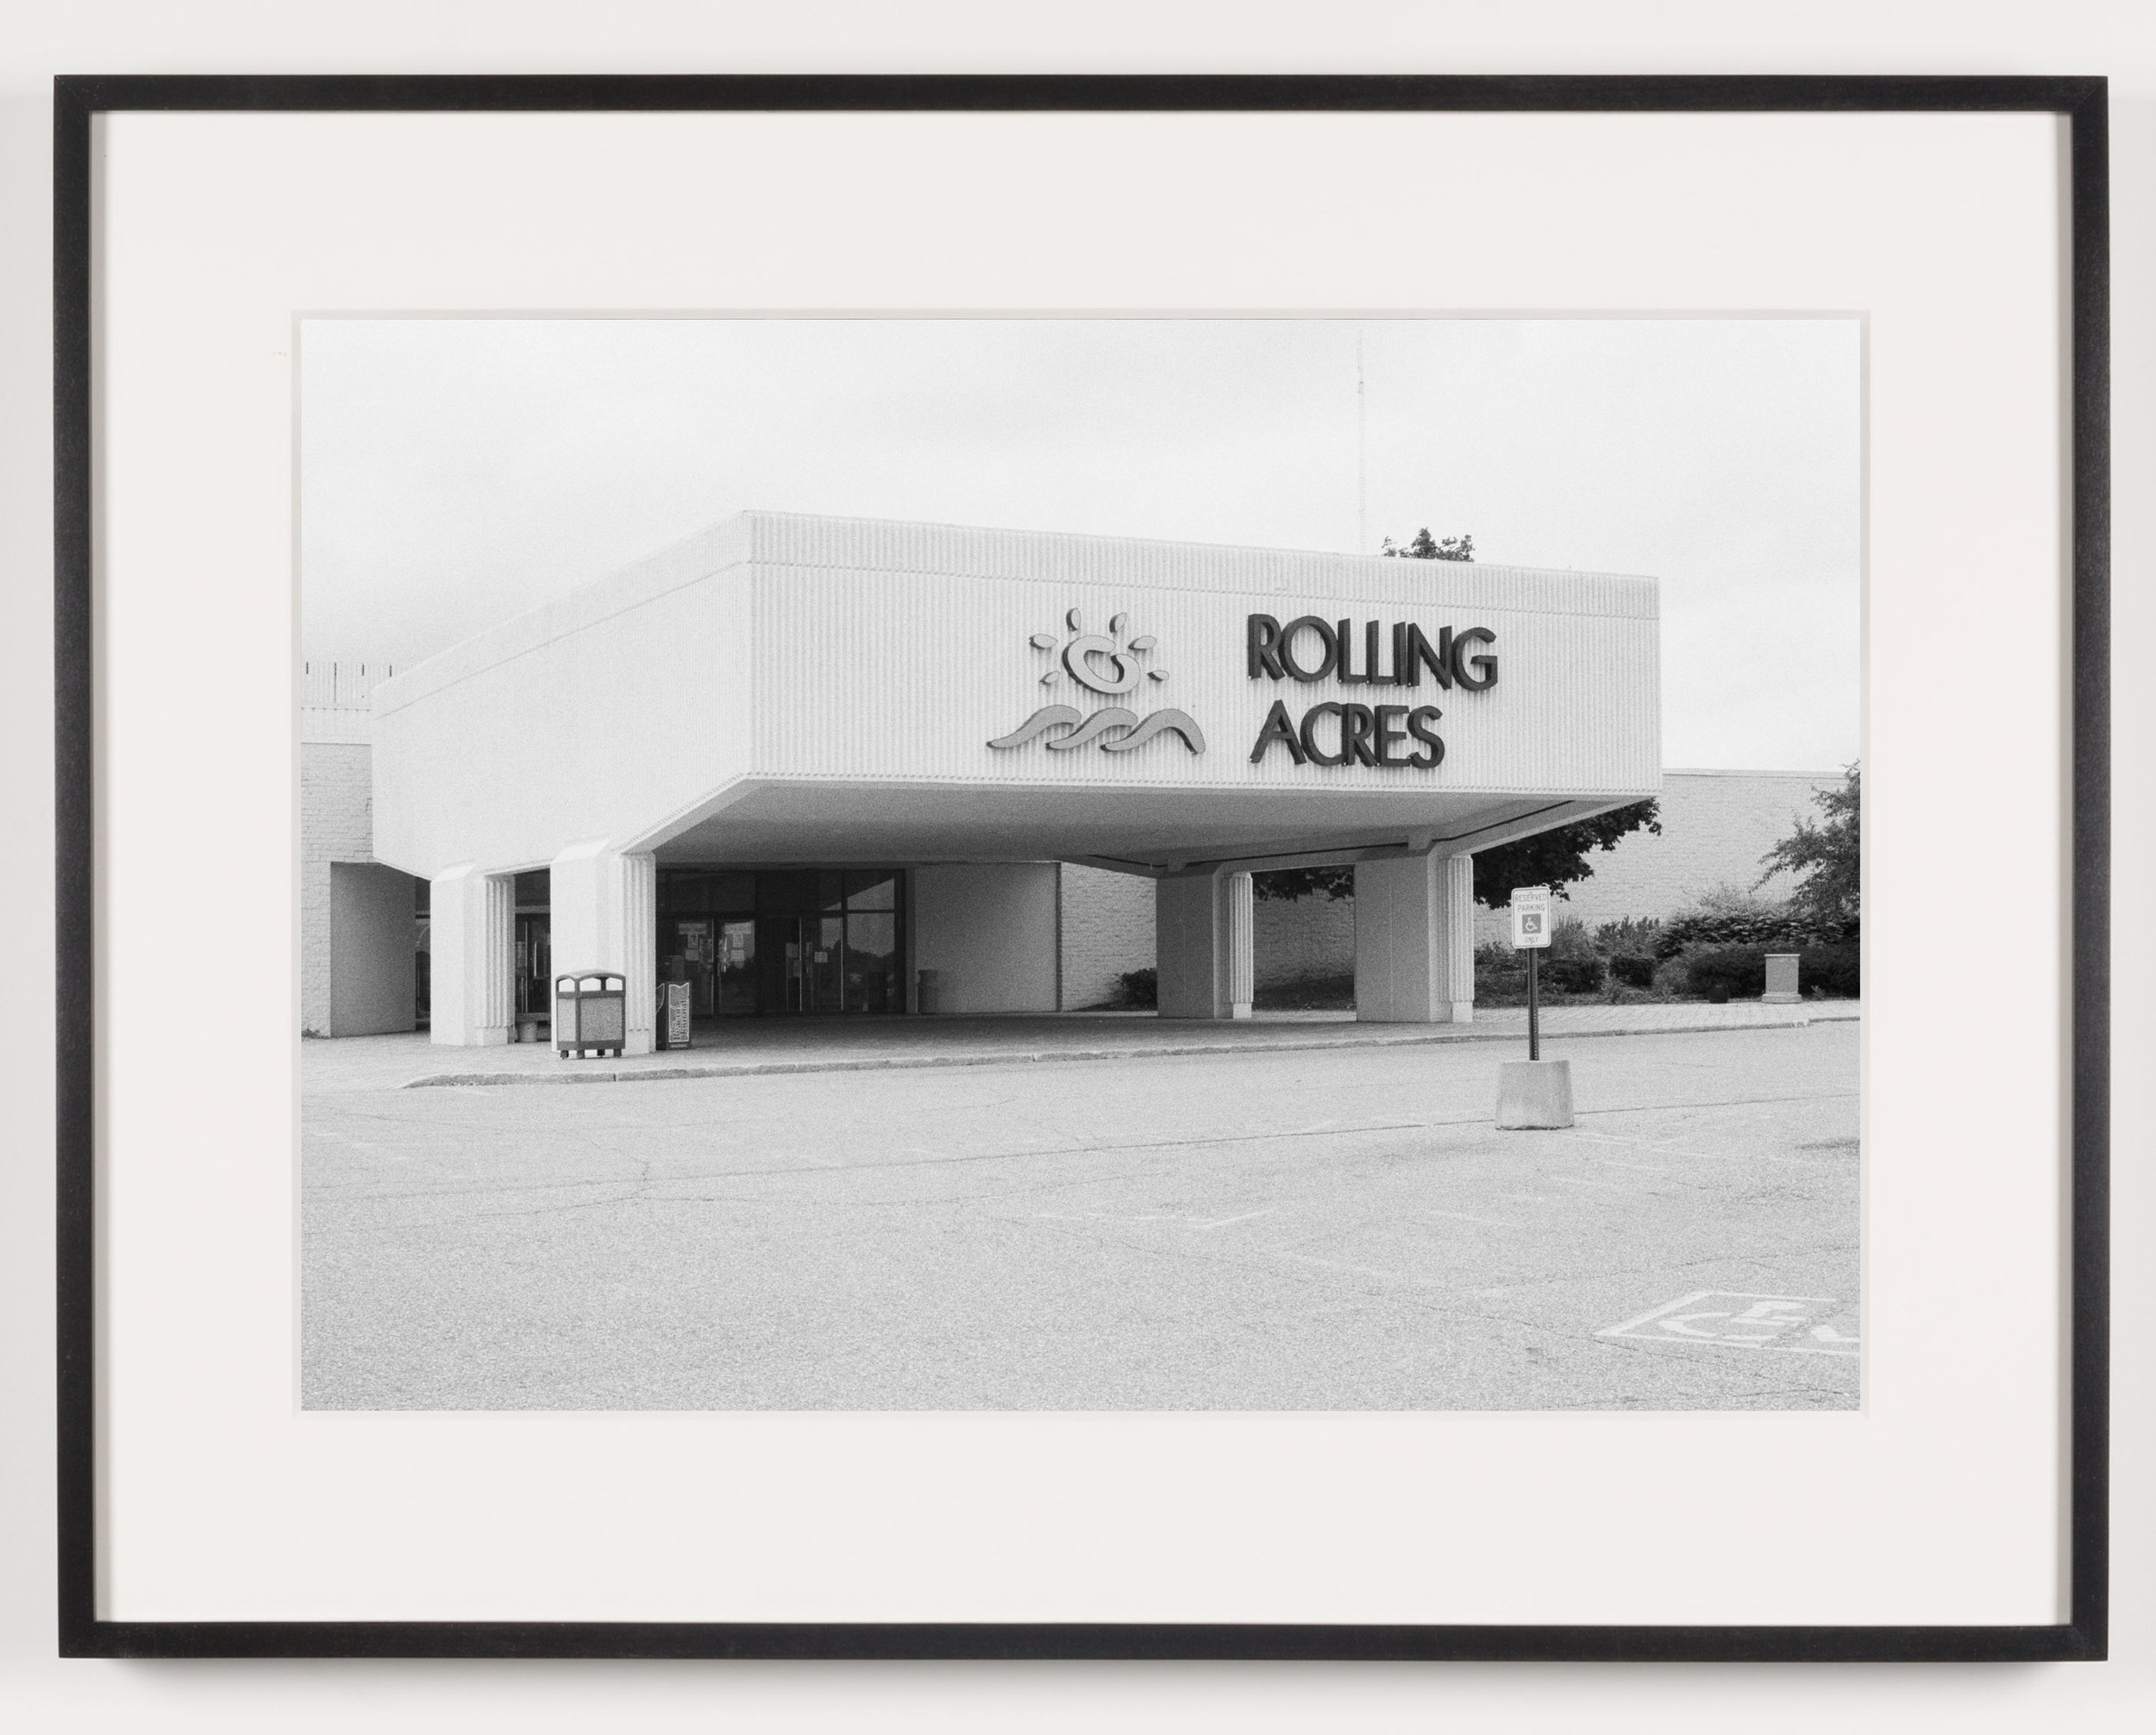 Rolling Acres Mall (View of Main Entrance) Akron, OH, Est. 1975   2011  Epson Ultrachrome K3 archival ink jet print on Hahnemühle Photo Rag paper  21 5/8 x 28 1/8 inches   American Passages, 2001–2011    A Diagram of Forces, 2011